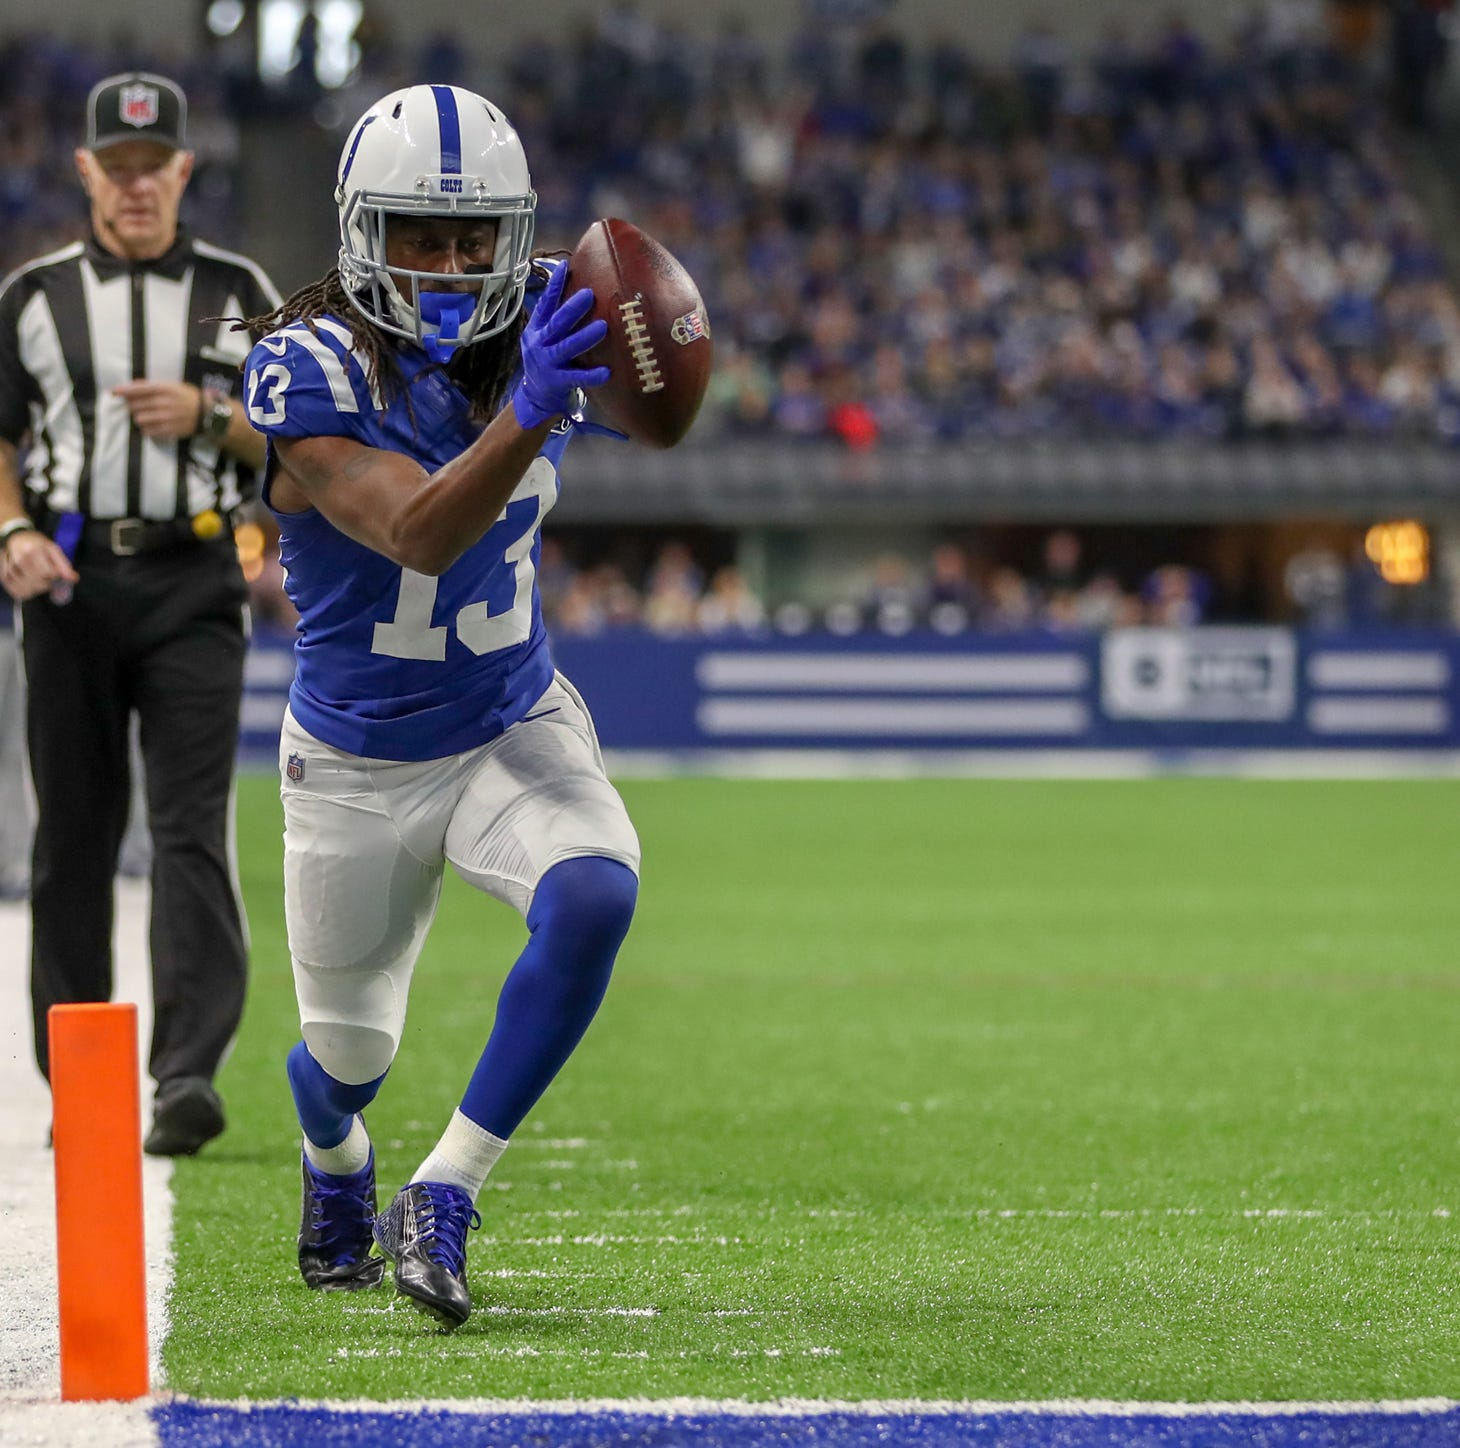 Insider: Patience pays off for Colts' T.Y. Hilton, torching Titans team that left him 1-on-1